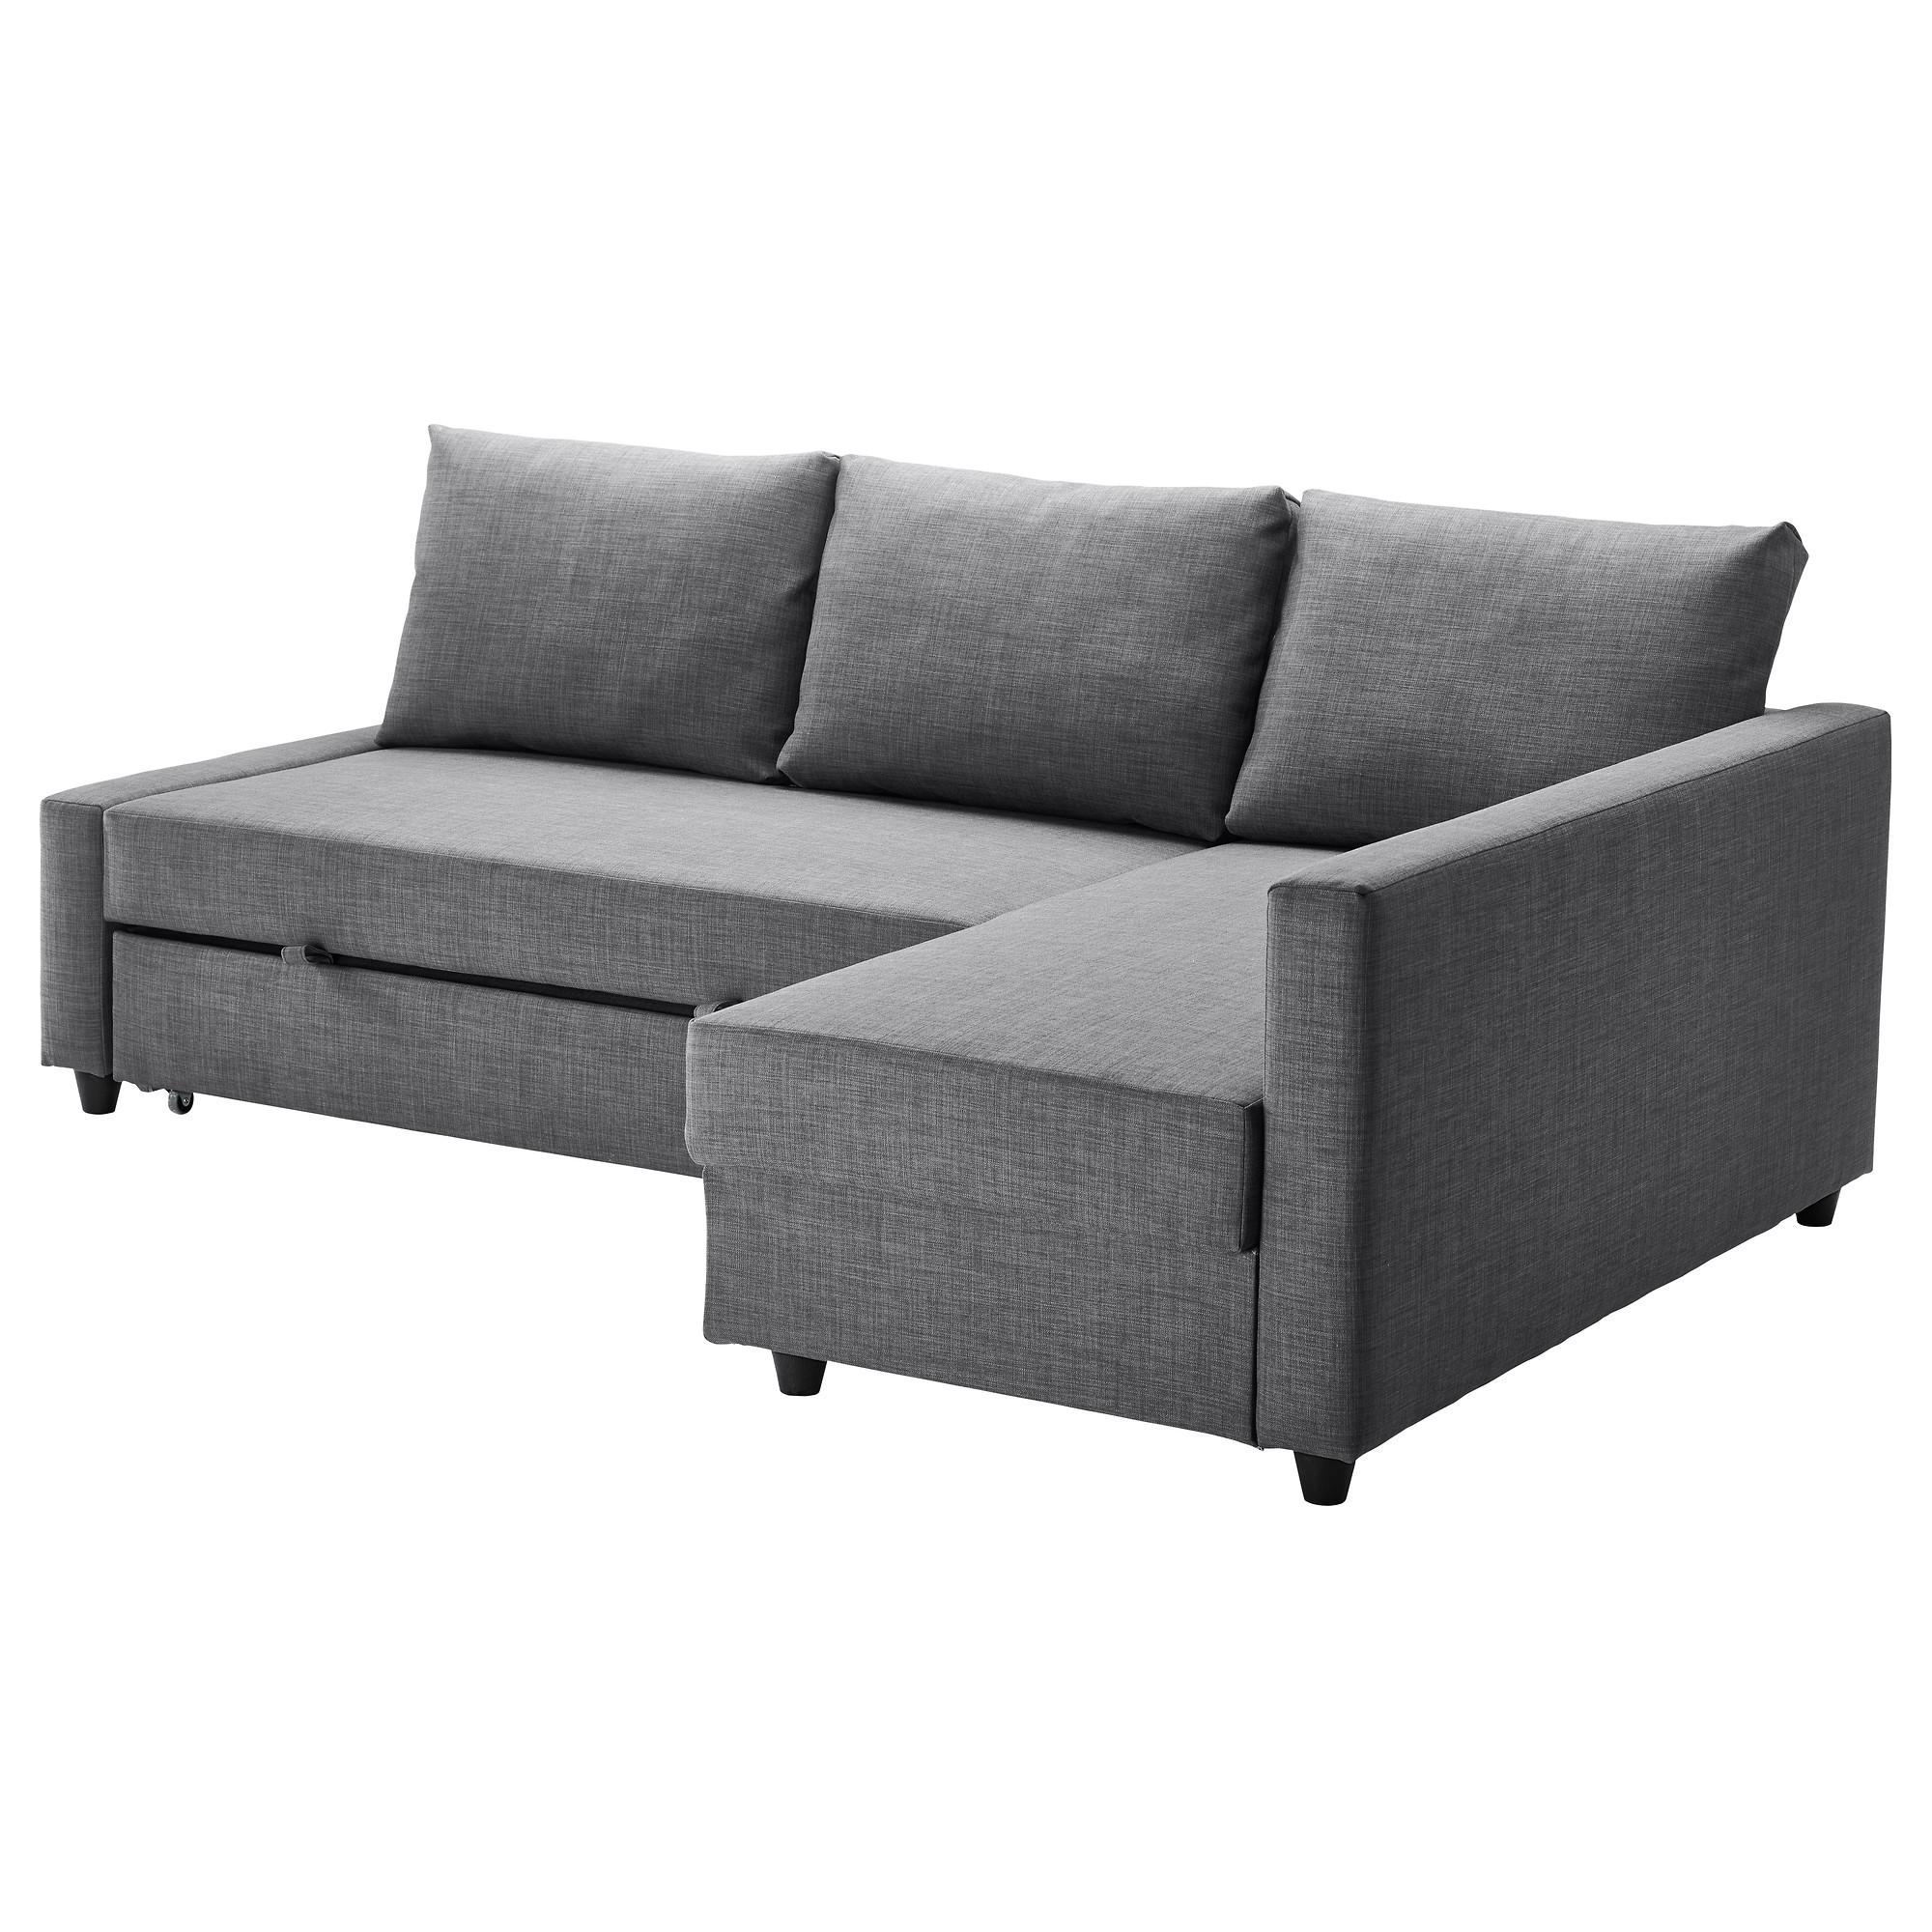 Sofa bed with storage ikea - Friheten Sleeper Sectional 3 Seat W Storage Skiftebo Dark Gray Ikea